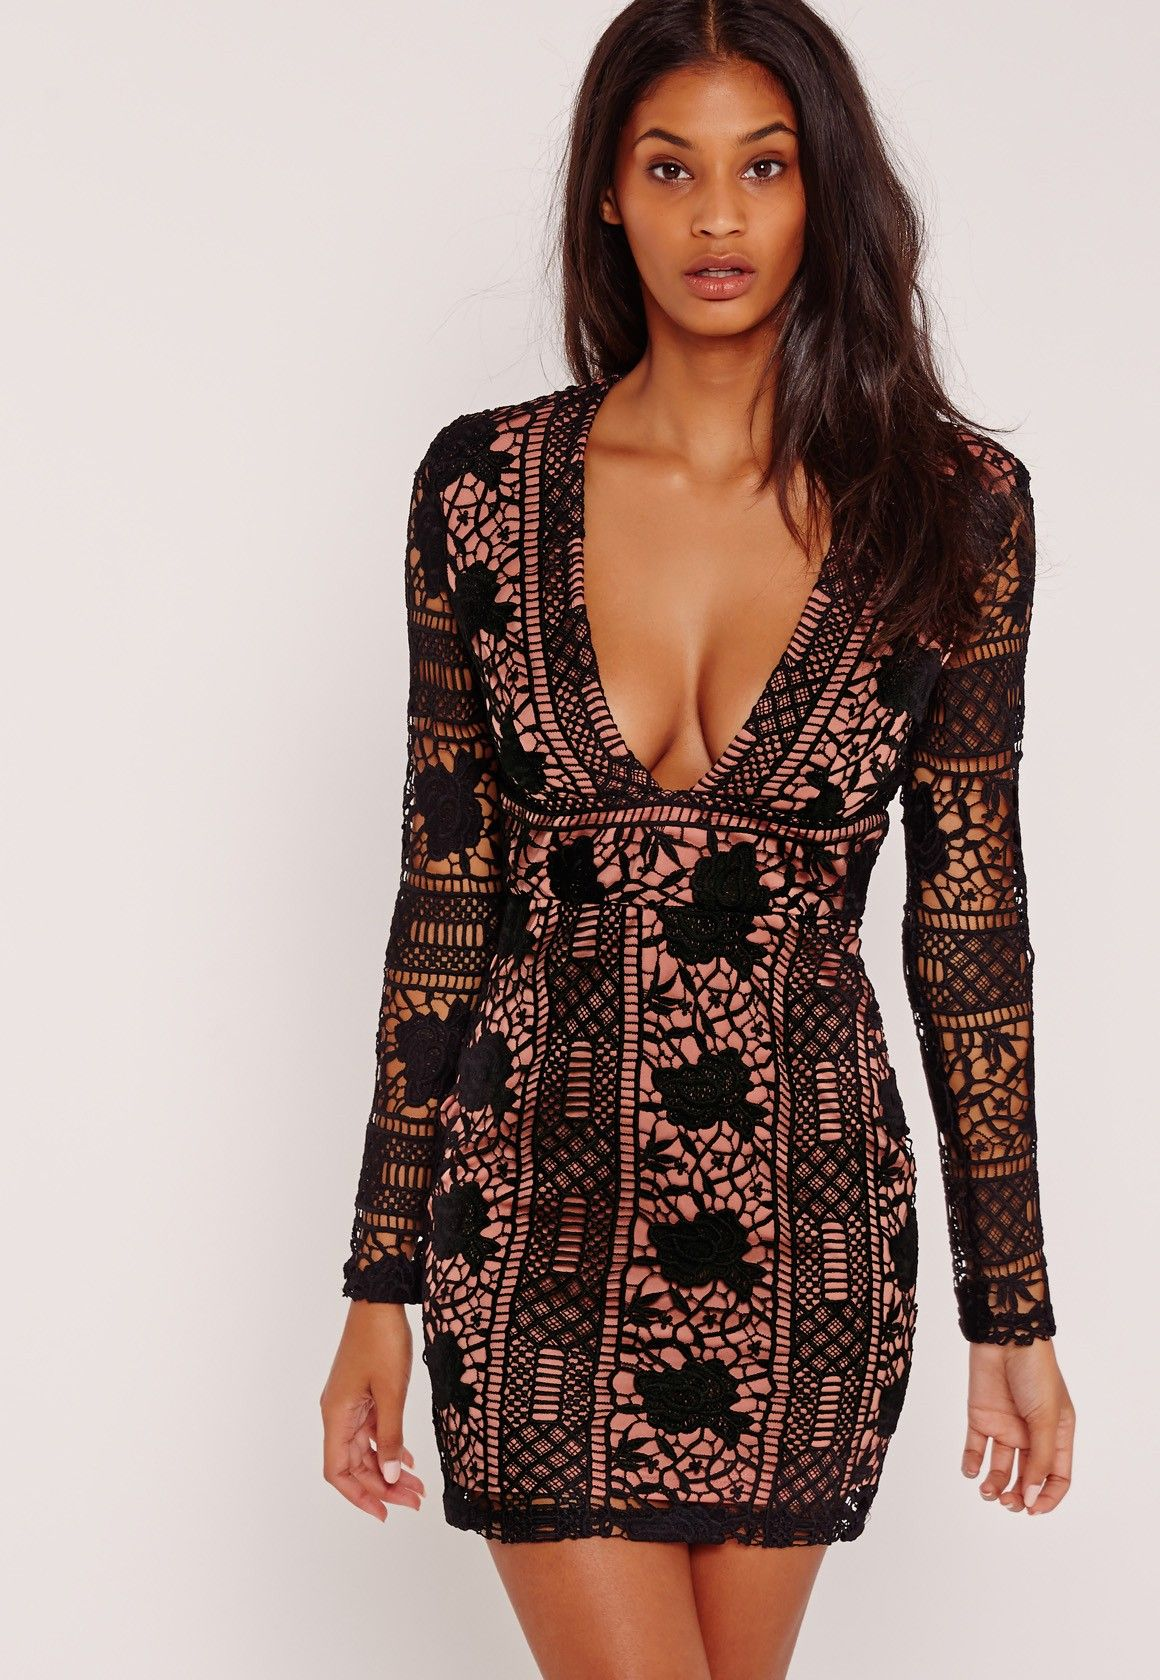 Missguided Lace Long Sleeve Plunge Bodycon Dress Black Plunge Bodycon Dress Long Sleeve Plunge Dress Lace Dress [ 1680 x 1160 Pixel ]